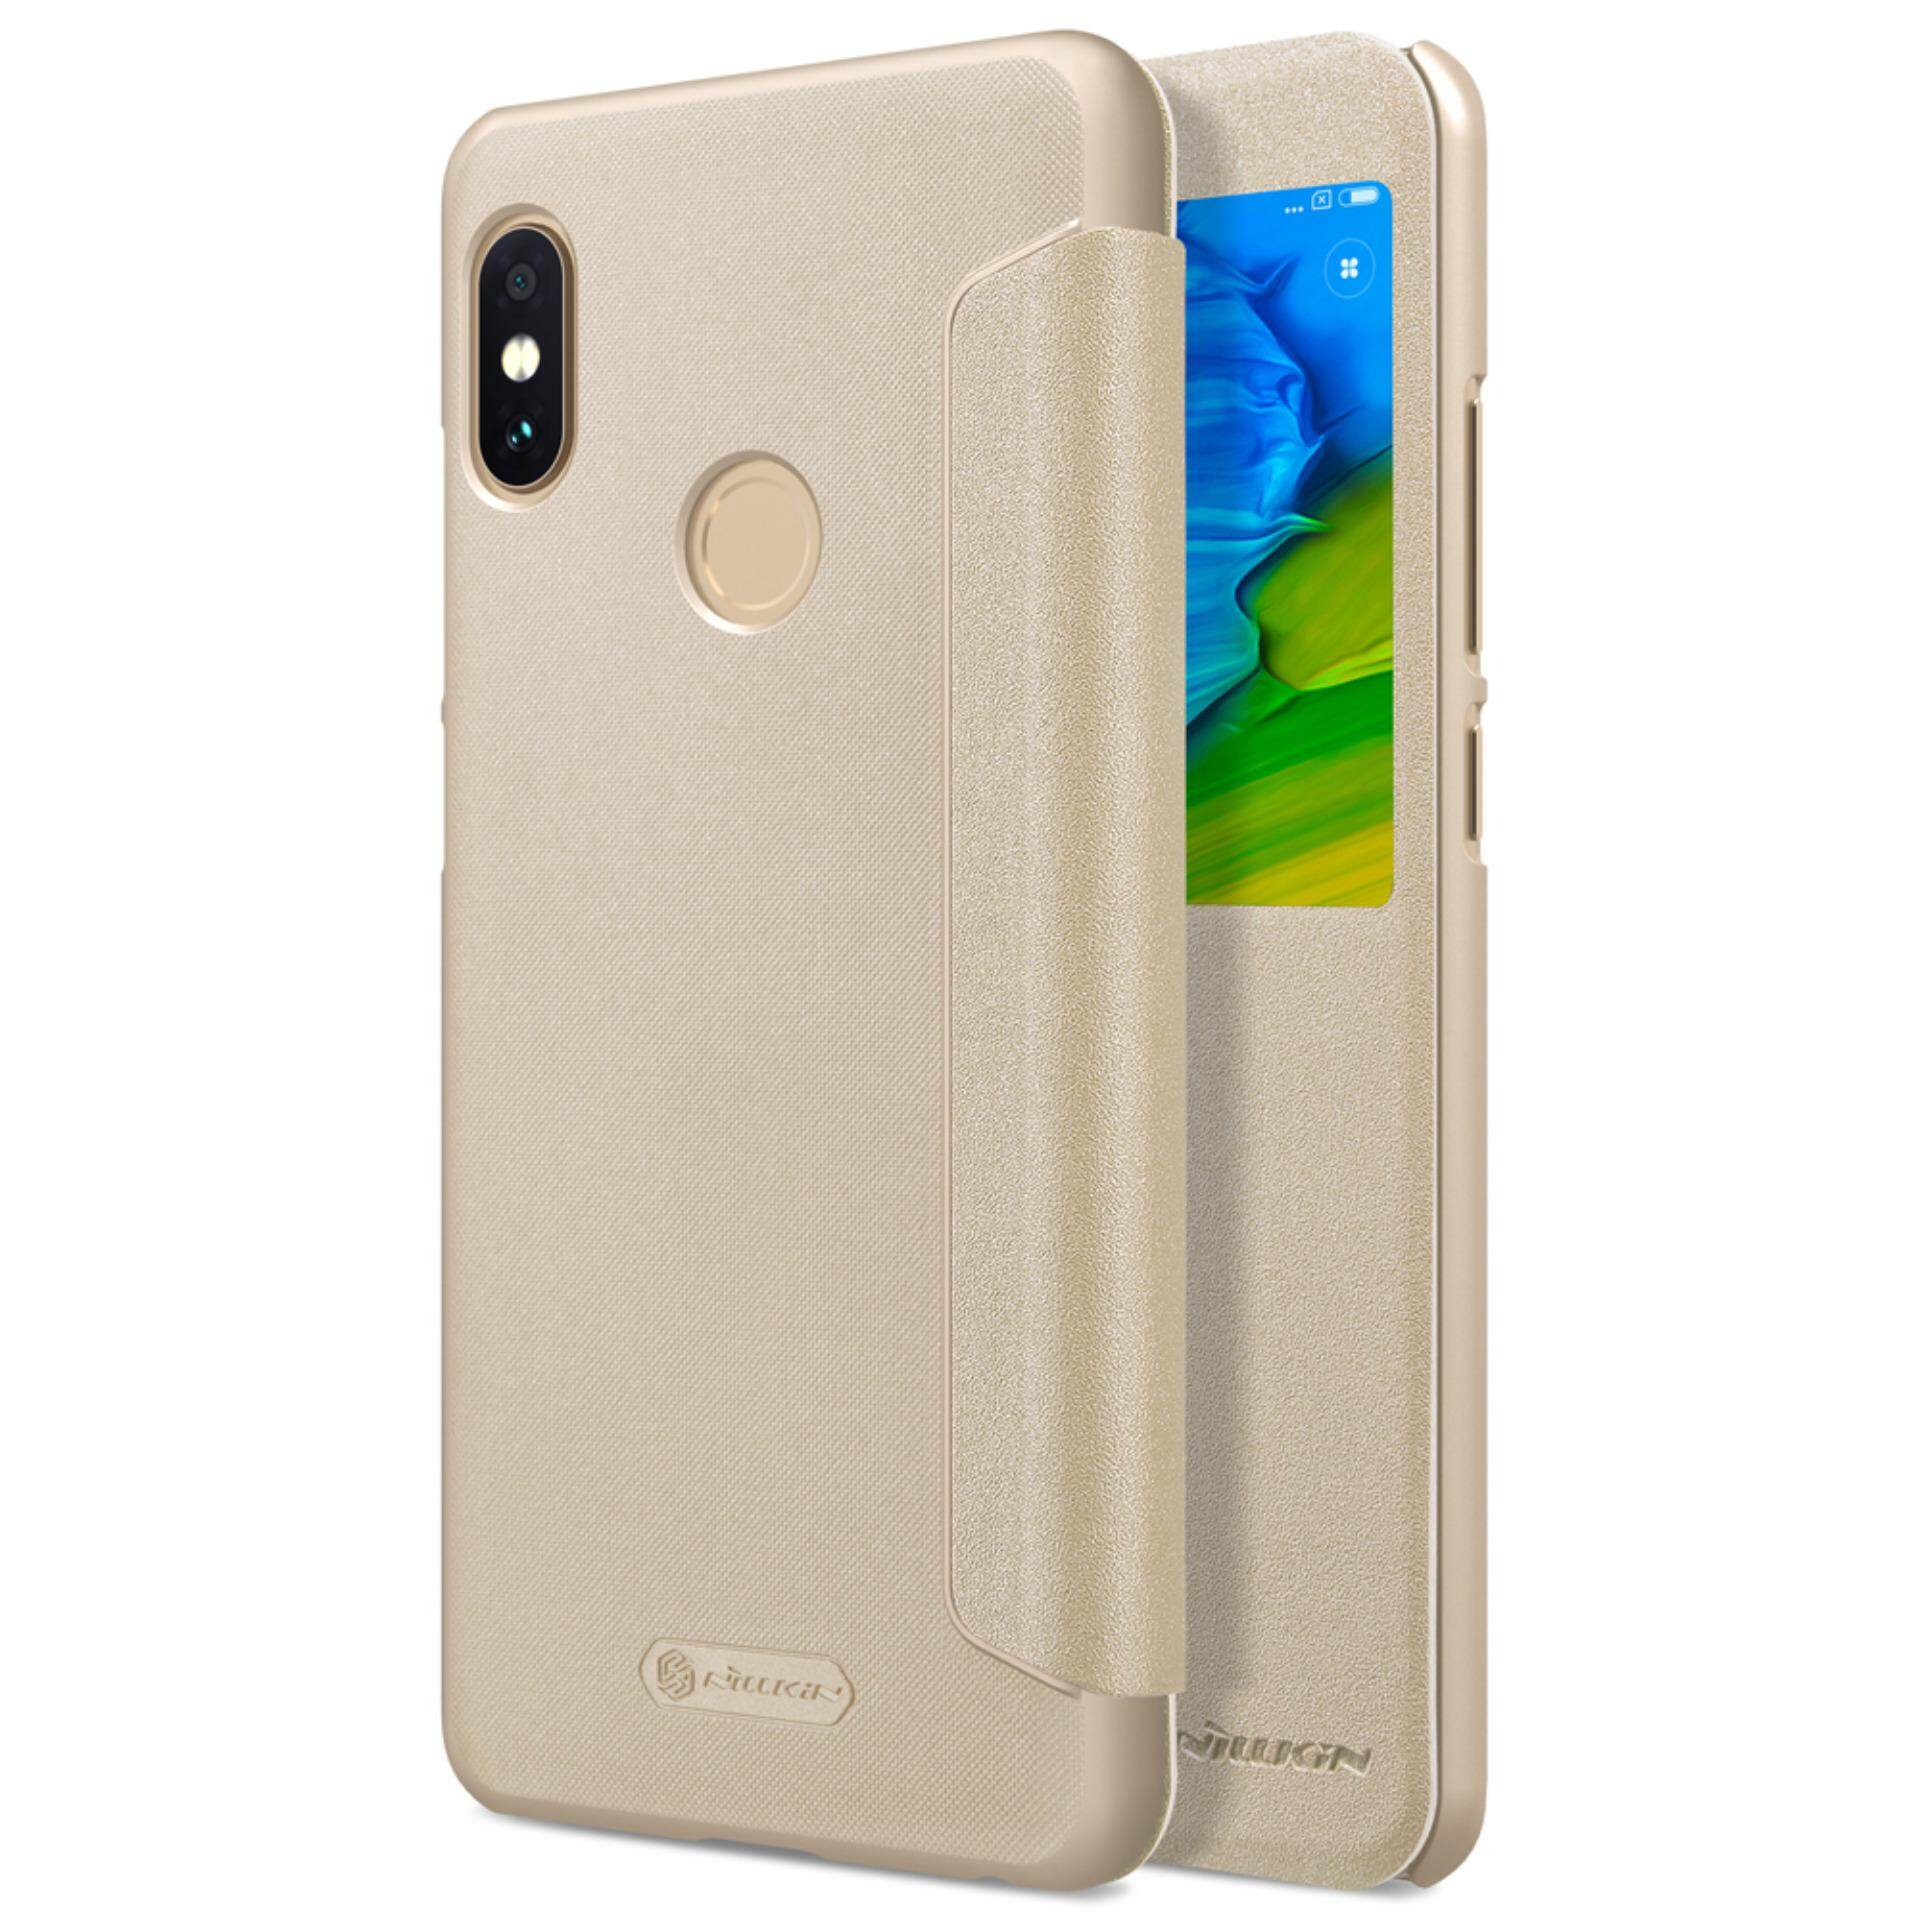 Compare Prices For Xiaomi Redmi Note 5 Pro Case Nillkin Sparkle Book Type Ultra Thin Smart View Window Wake Up Sleep Flip Up Pu Leather Case Protective Shell Slim Cover Phone Case Casing For Xiaomi Redmi Note 5 Pro Intl